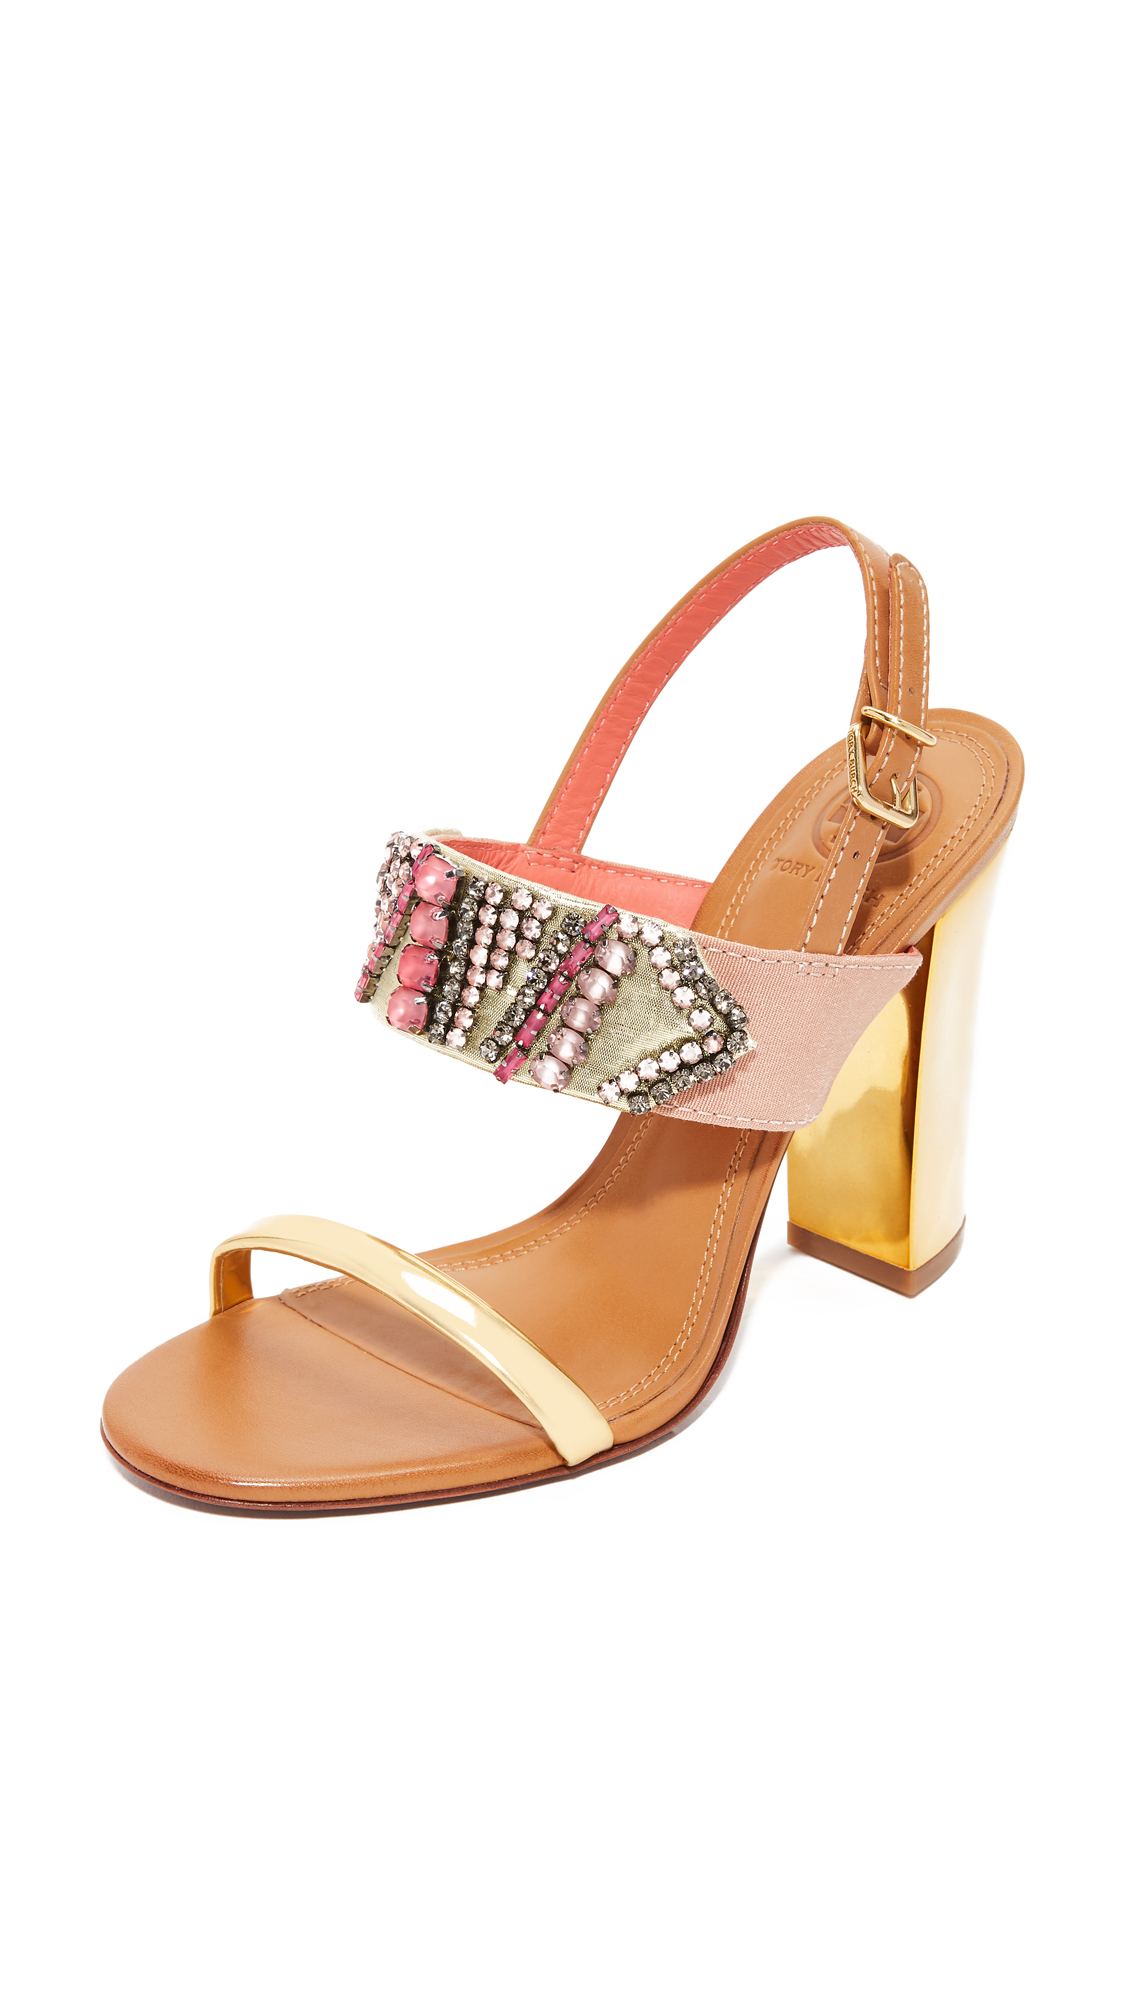 Tory Burch Tanner 100mm Sandals - Strawberry Pink/Royal Tan/Gold